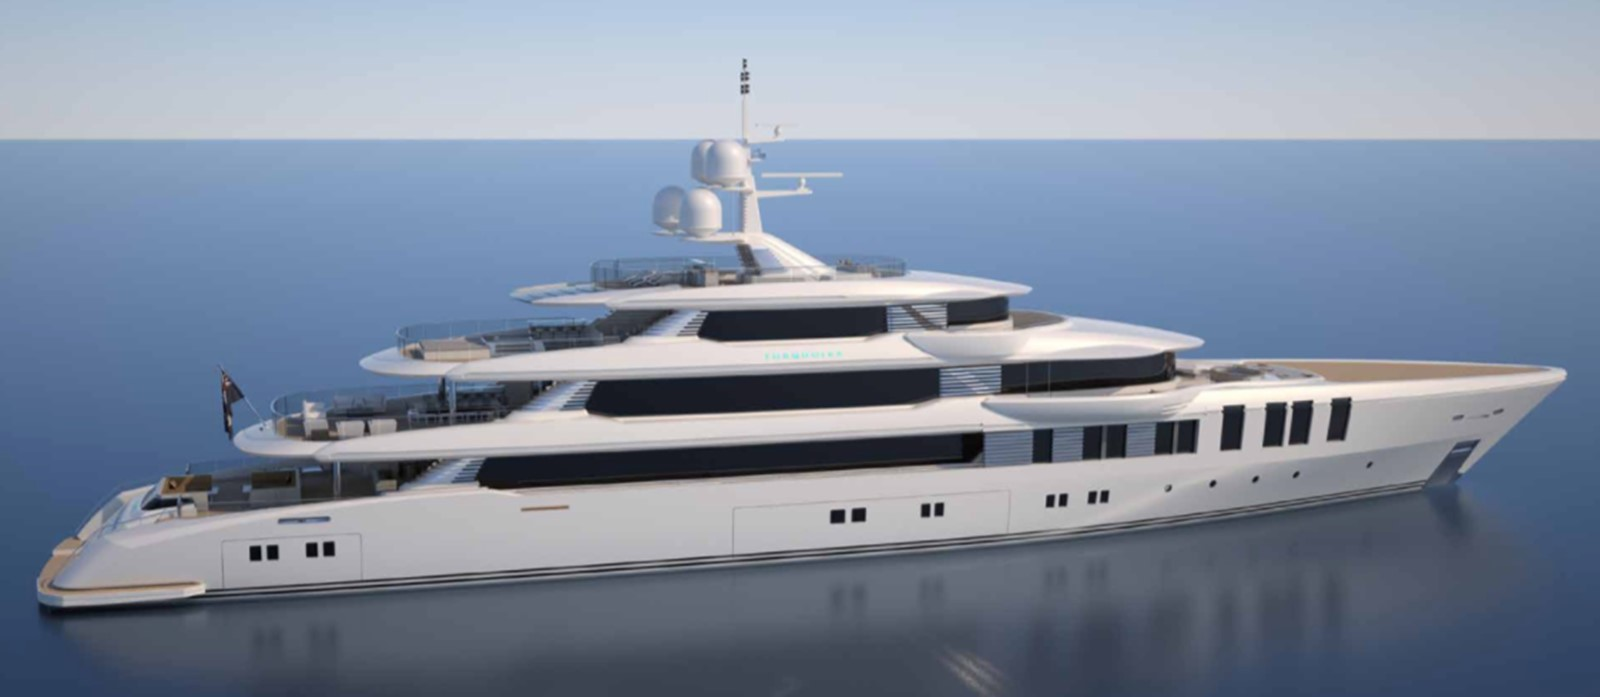 246 TURQUOISE YACHTS For Sale